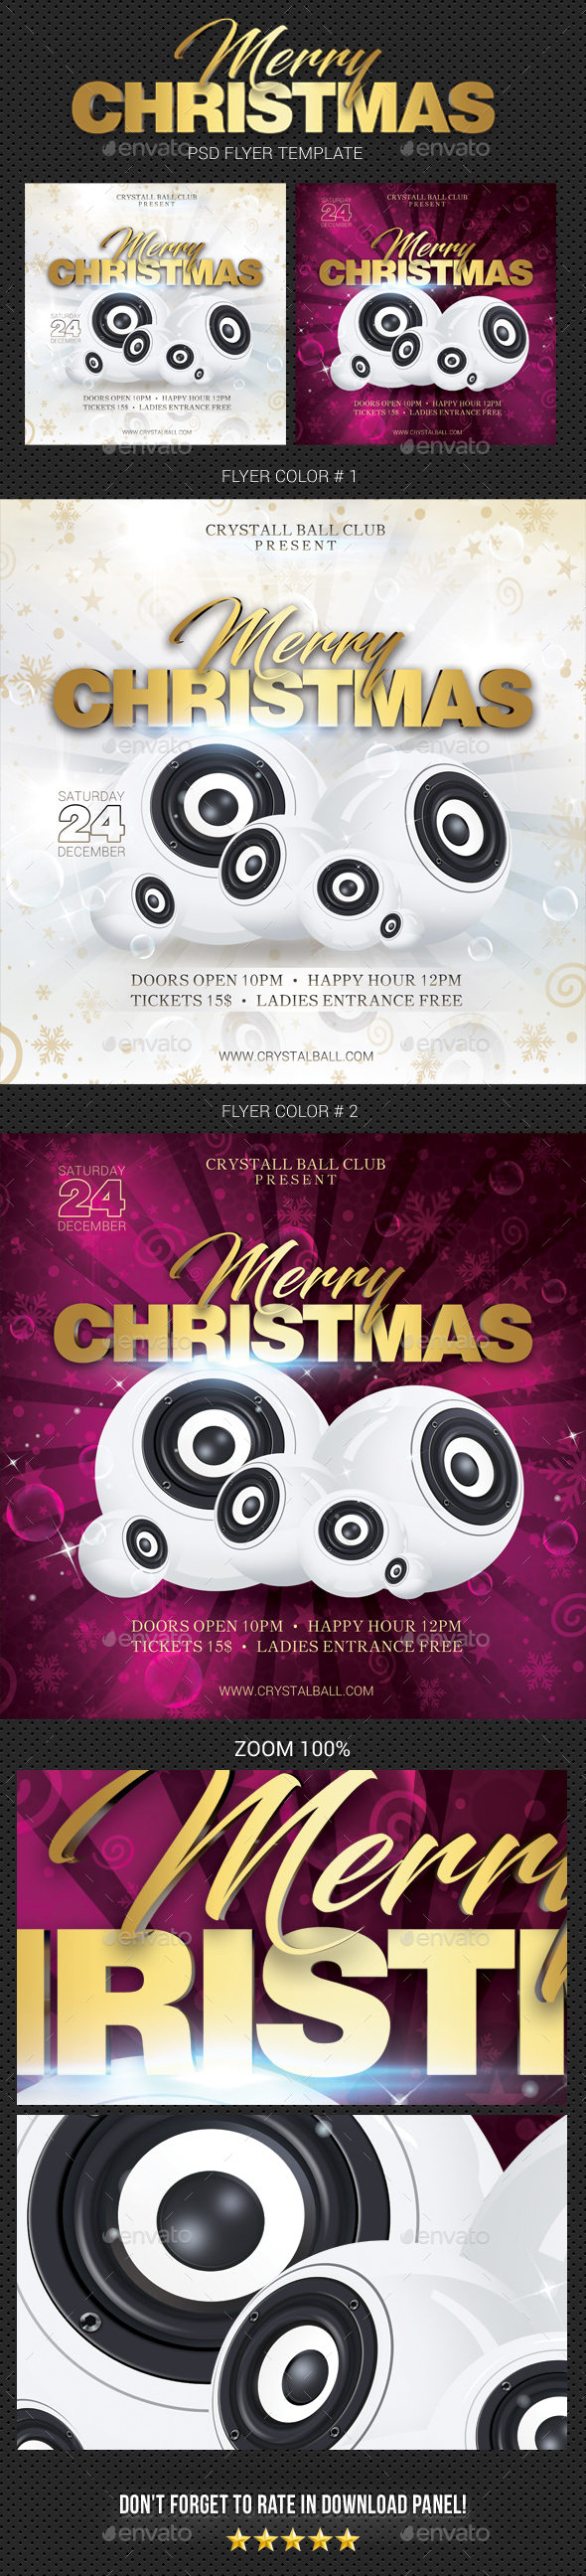 GraphicRiver Merry Christmas Party Flyer 05 20987507